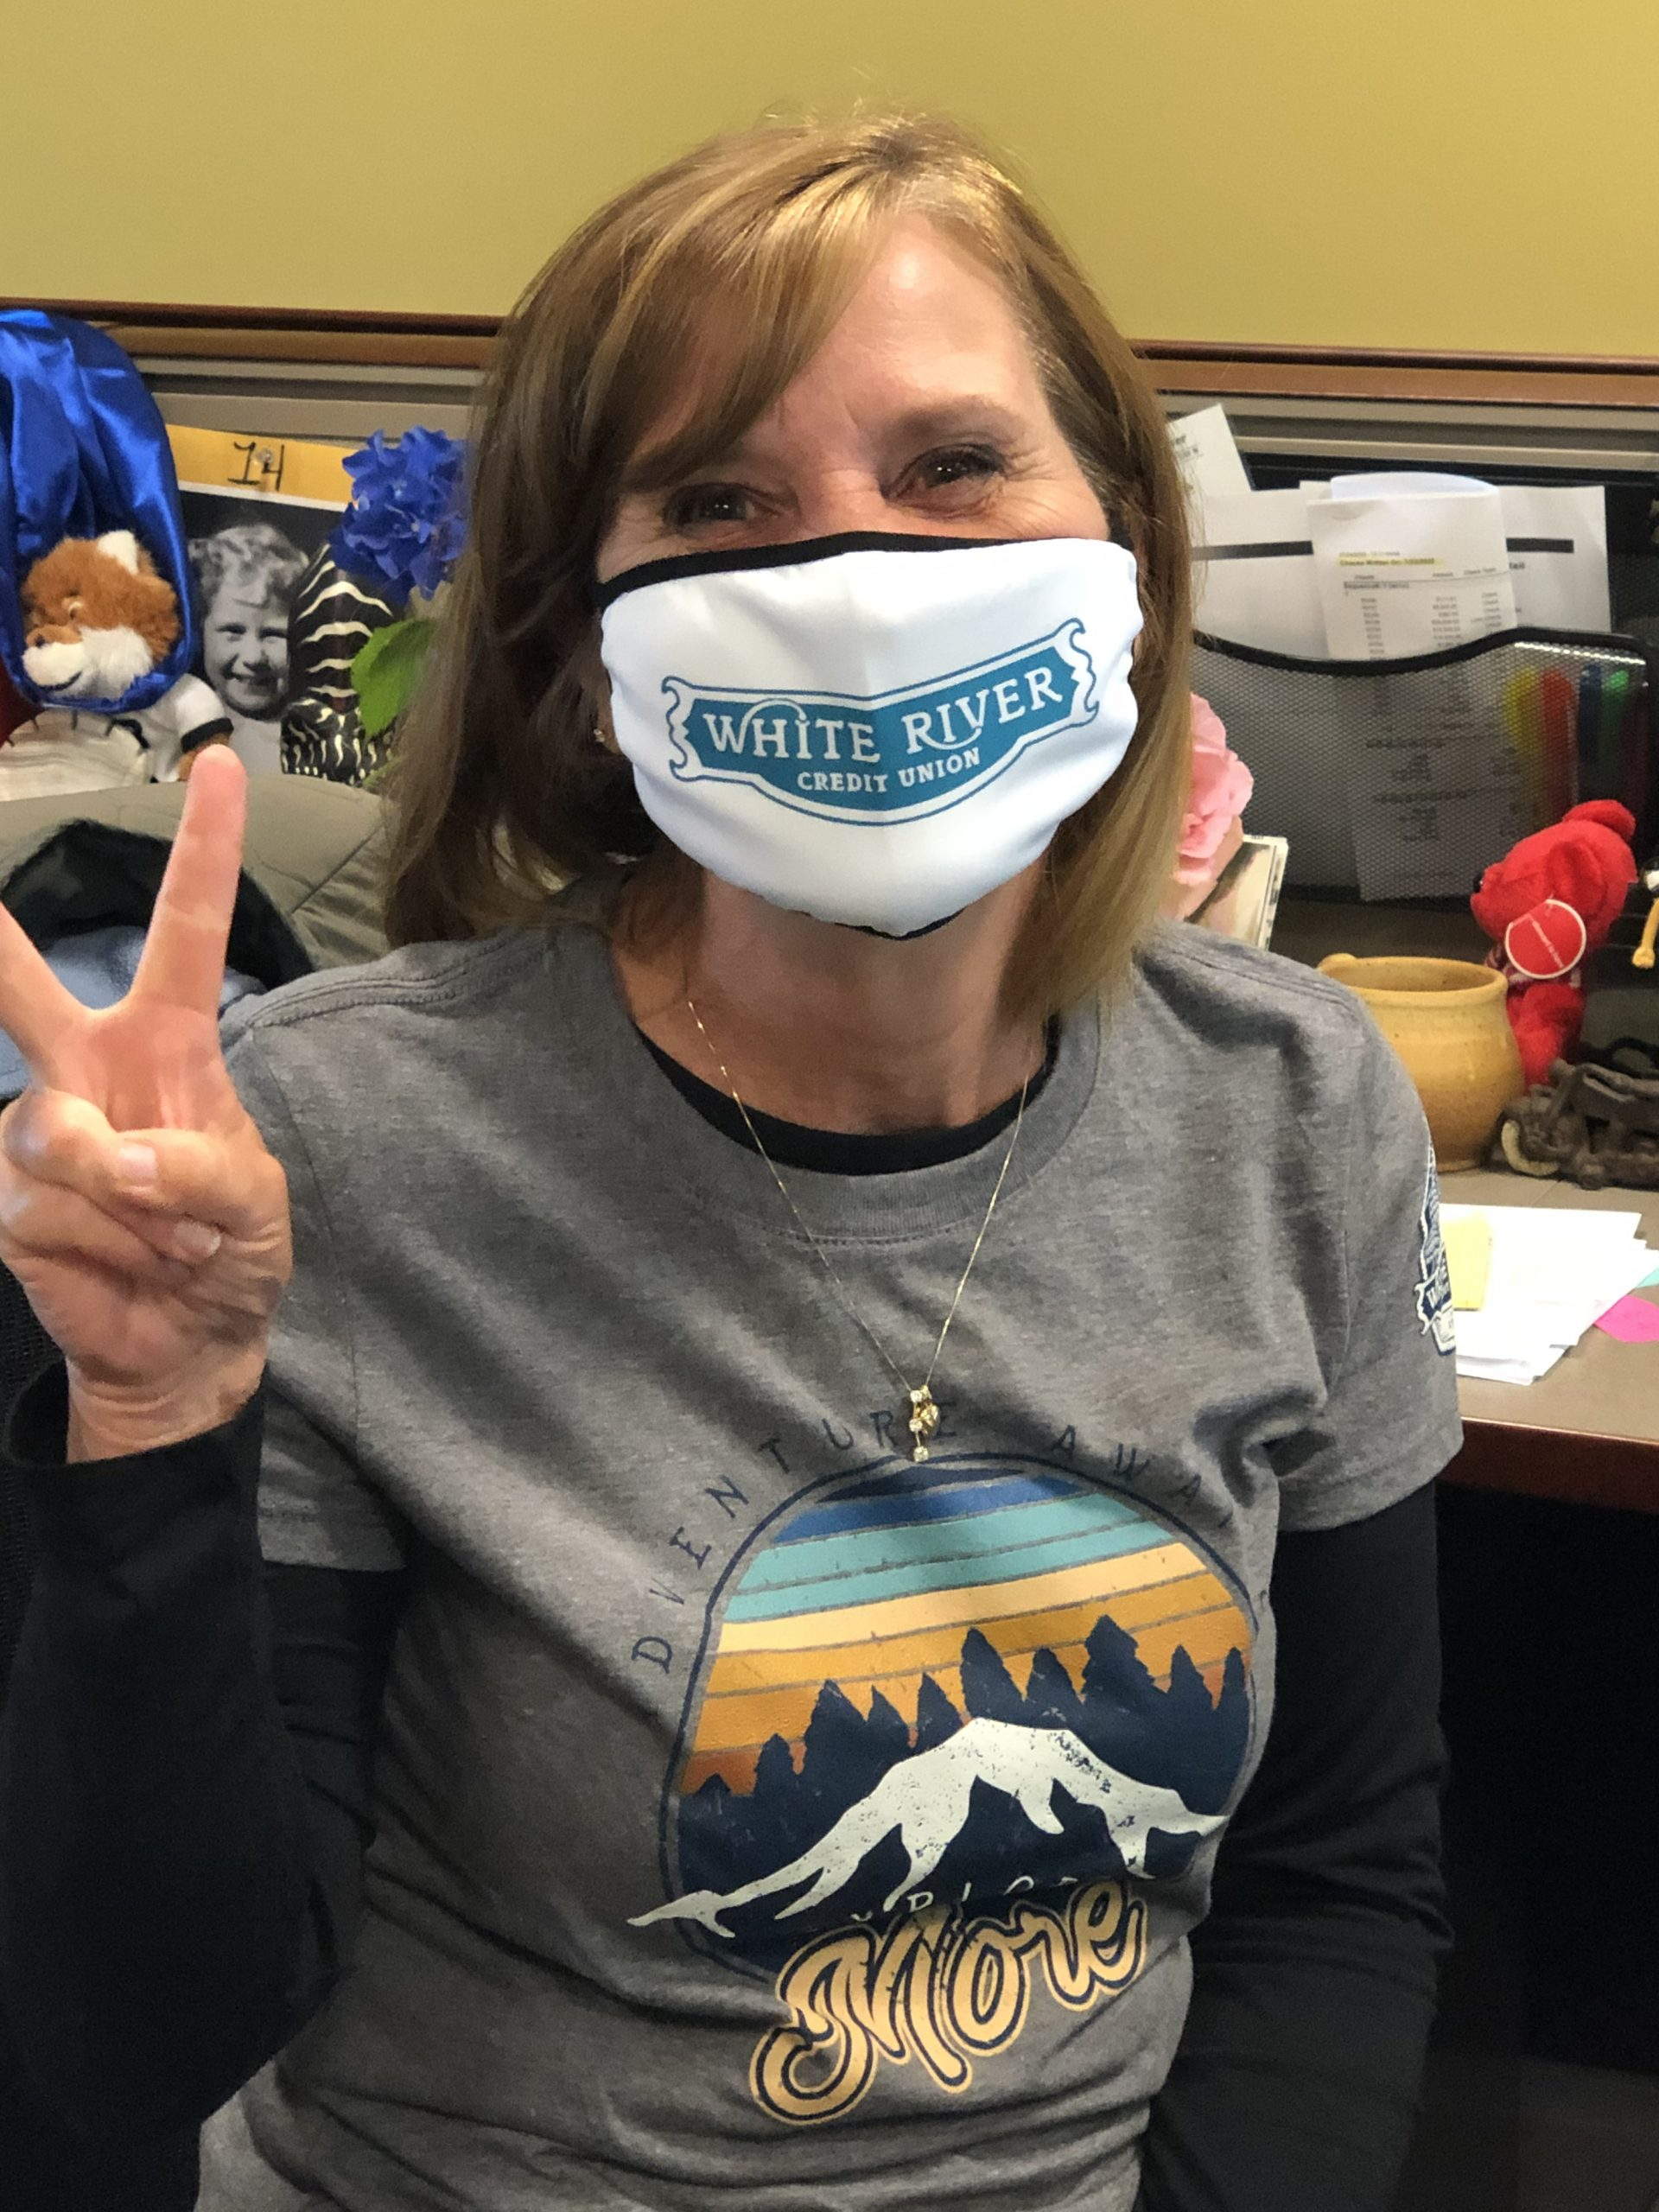 White River Credit Union employee making a peace sign and wearing mask